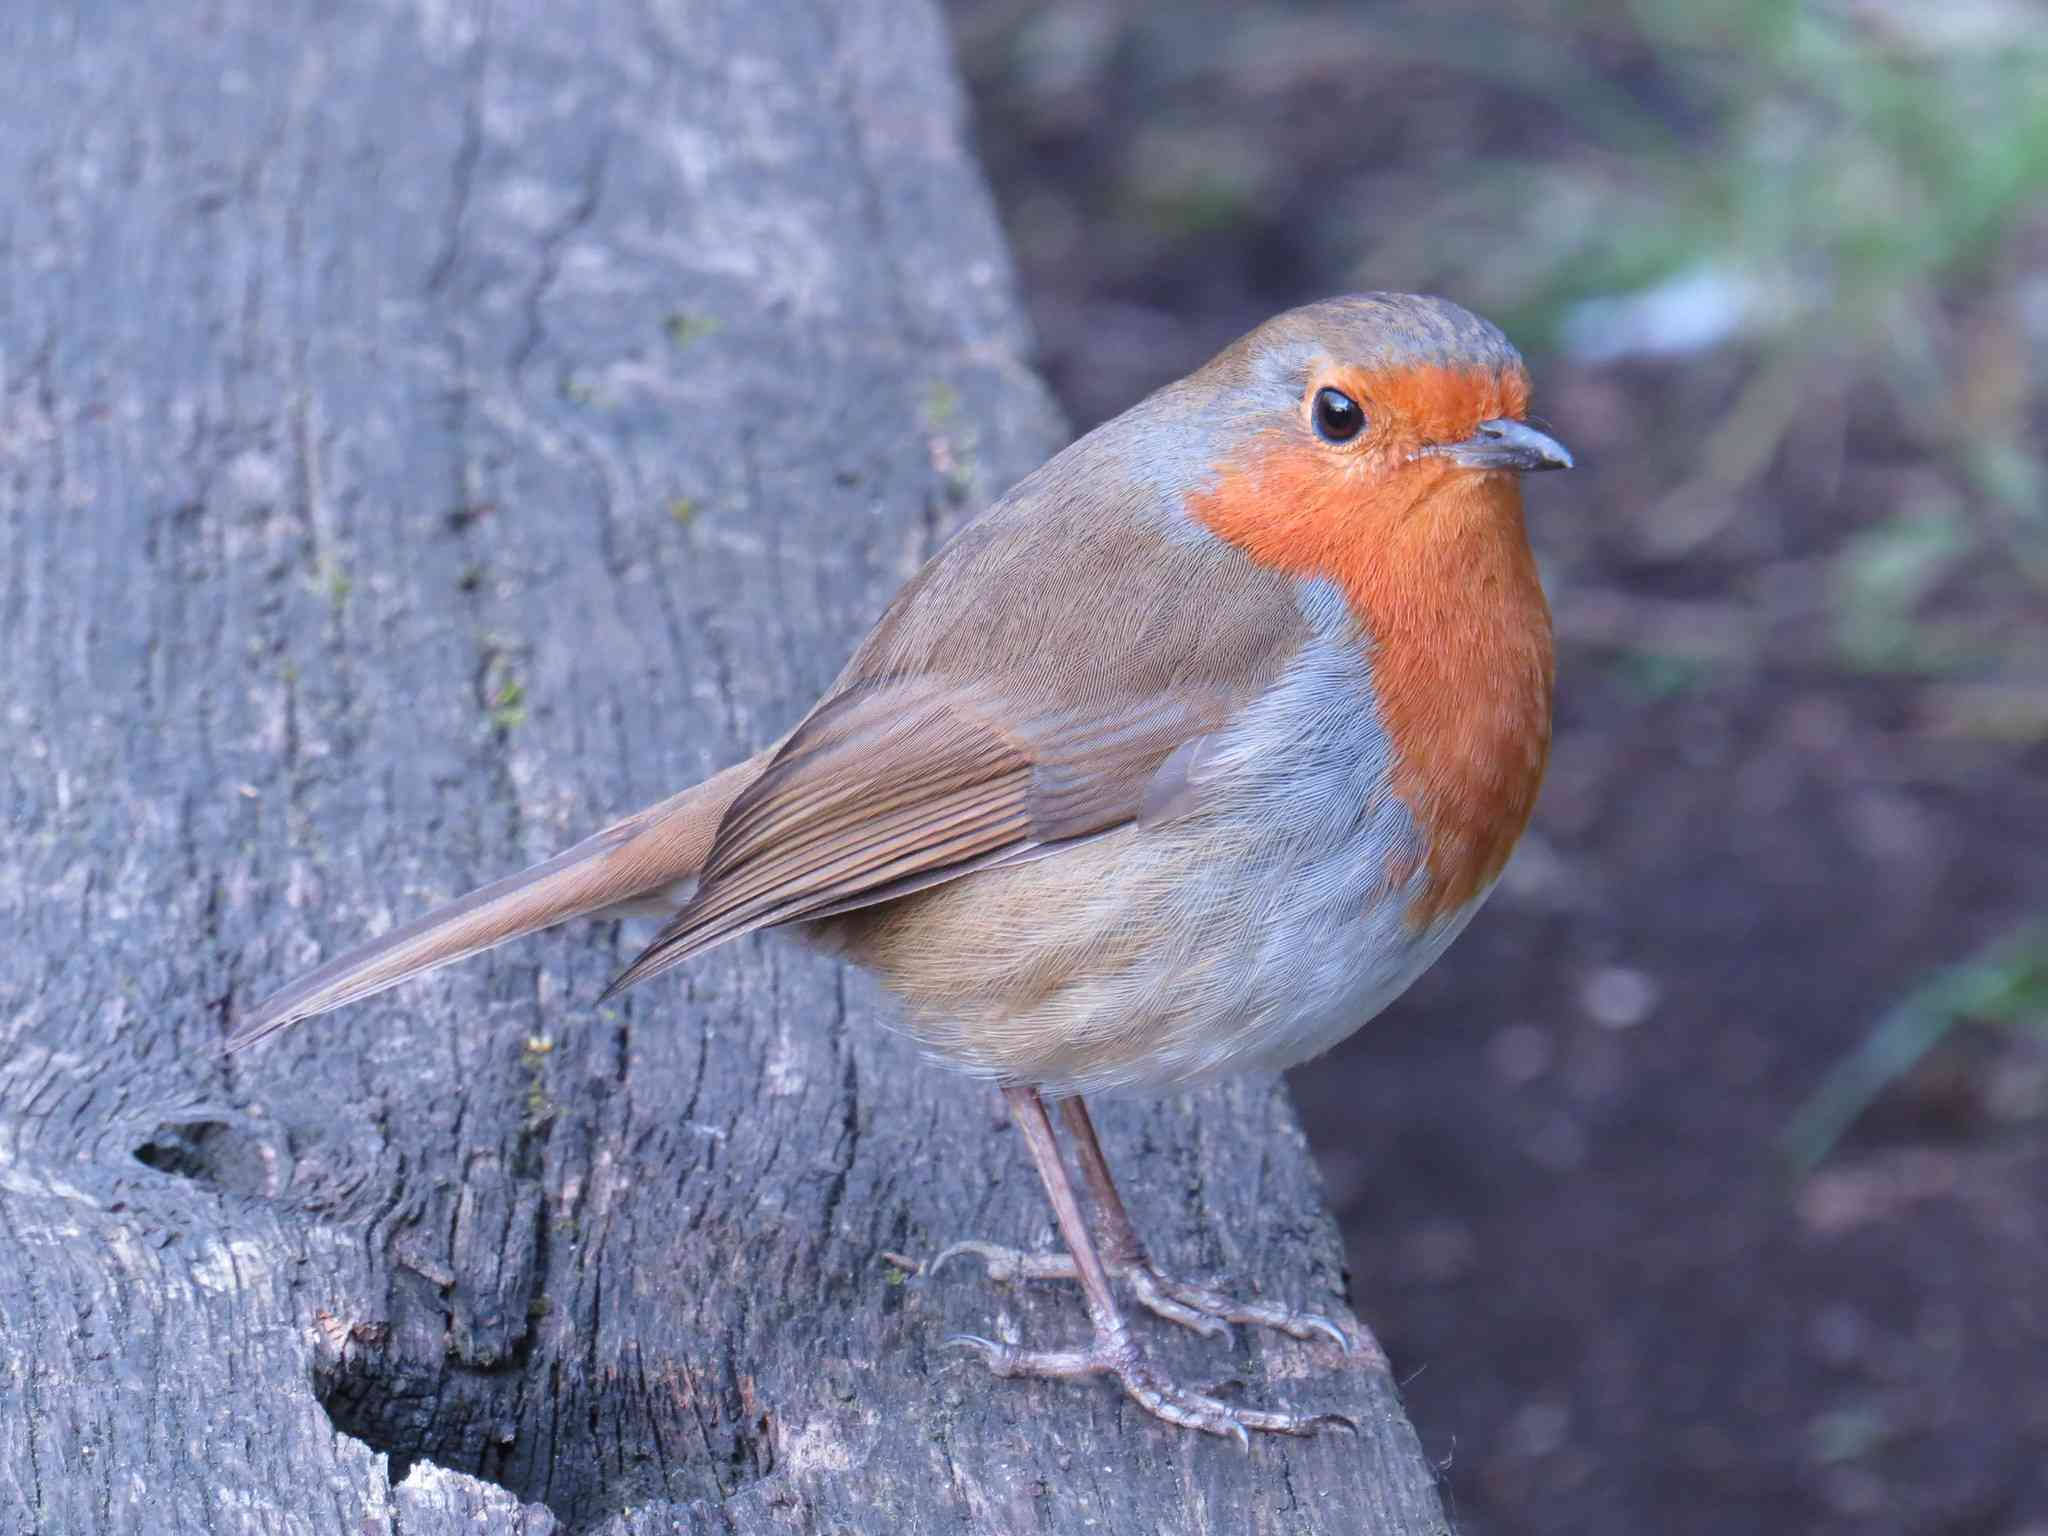 European robin perched on a piece of wood